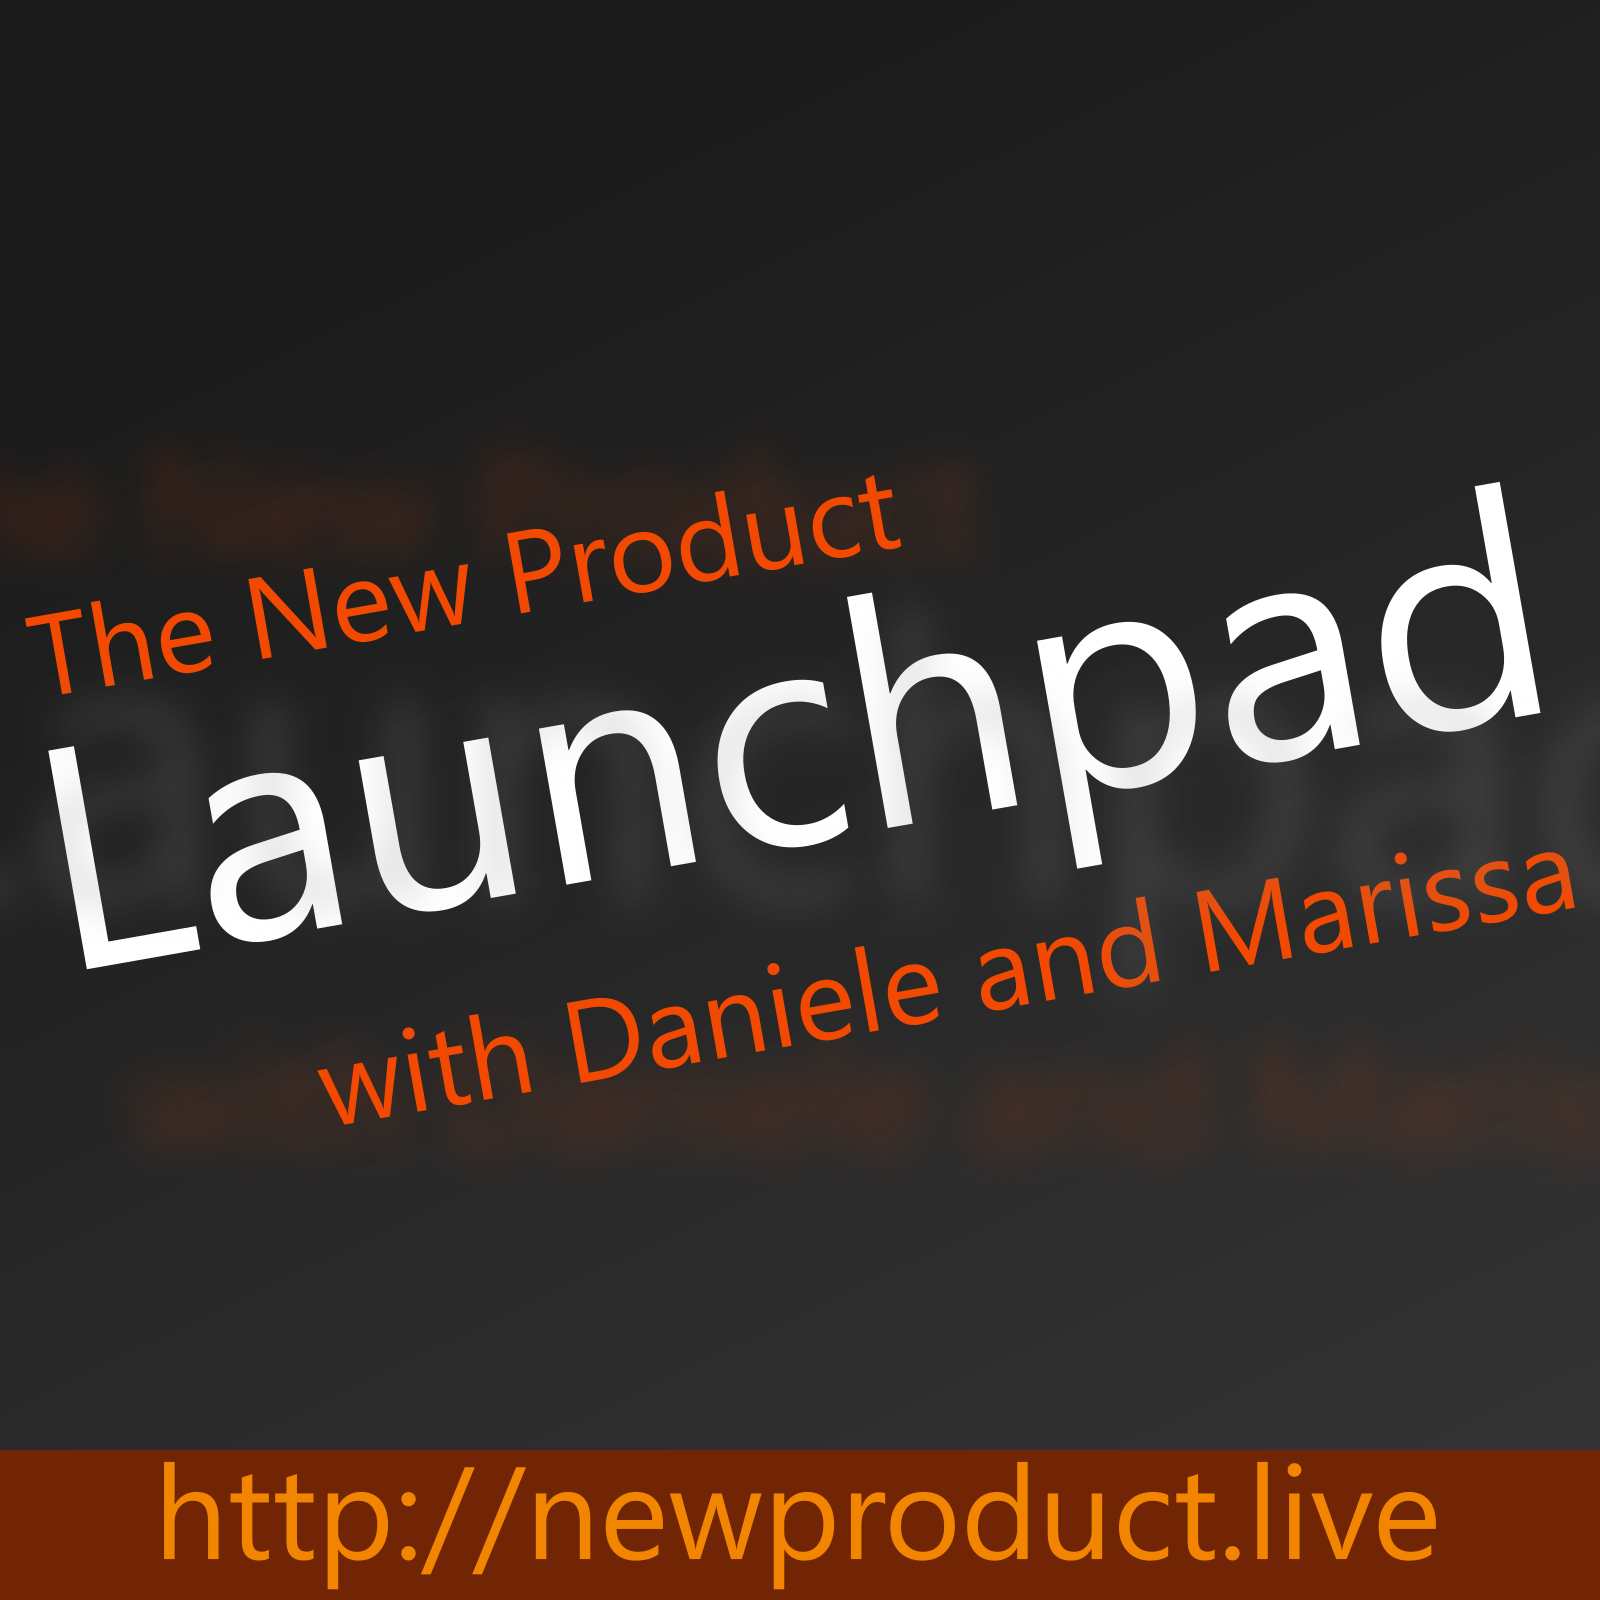 The New Product Launchpad Cover Image